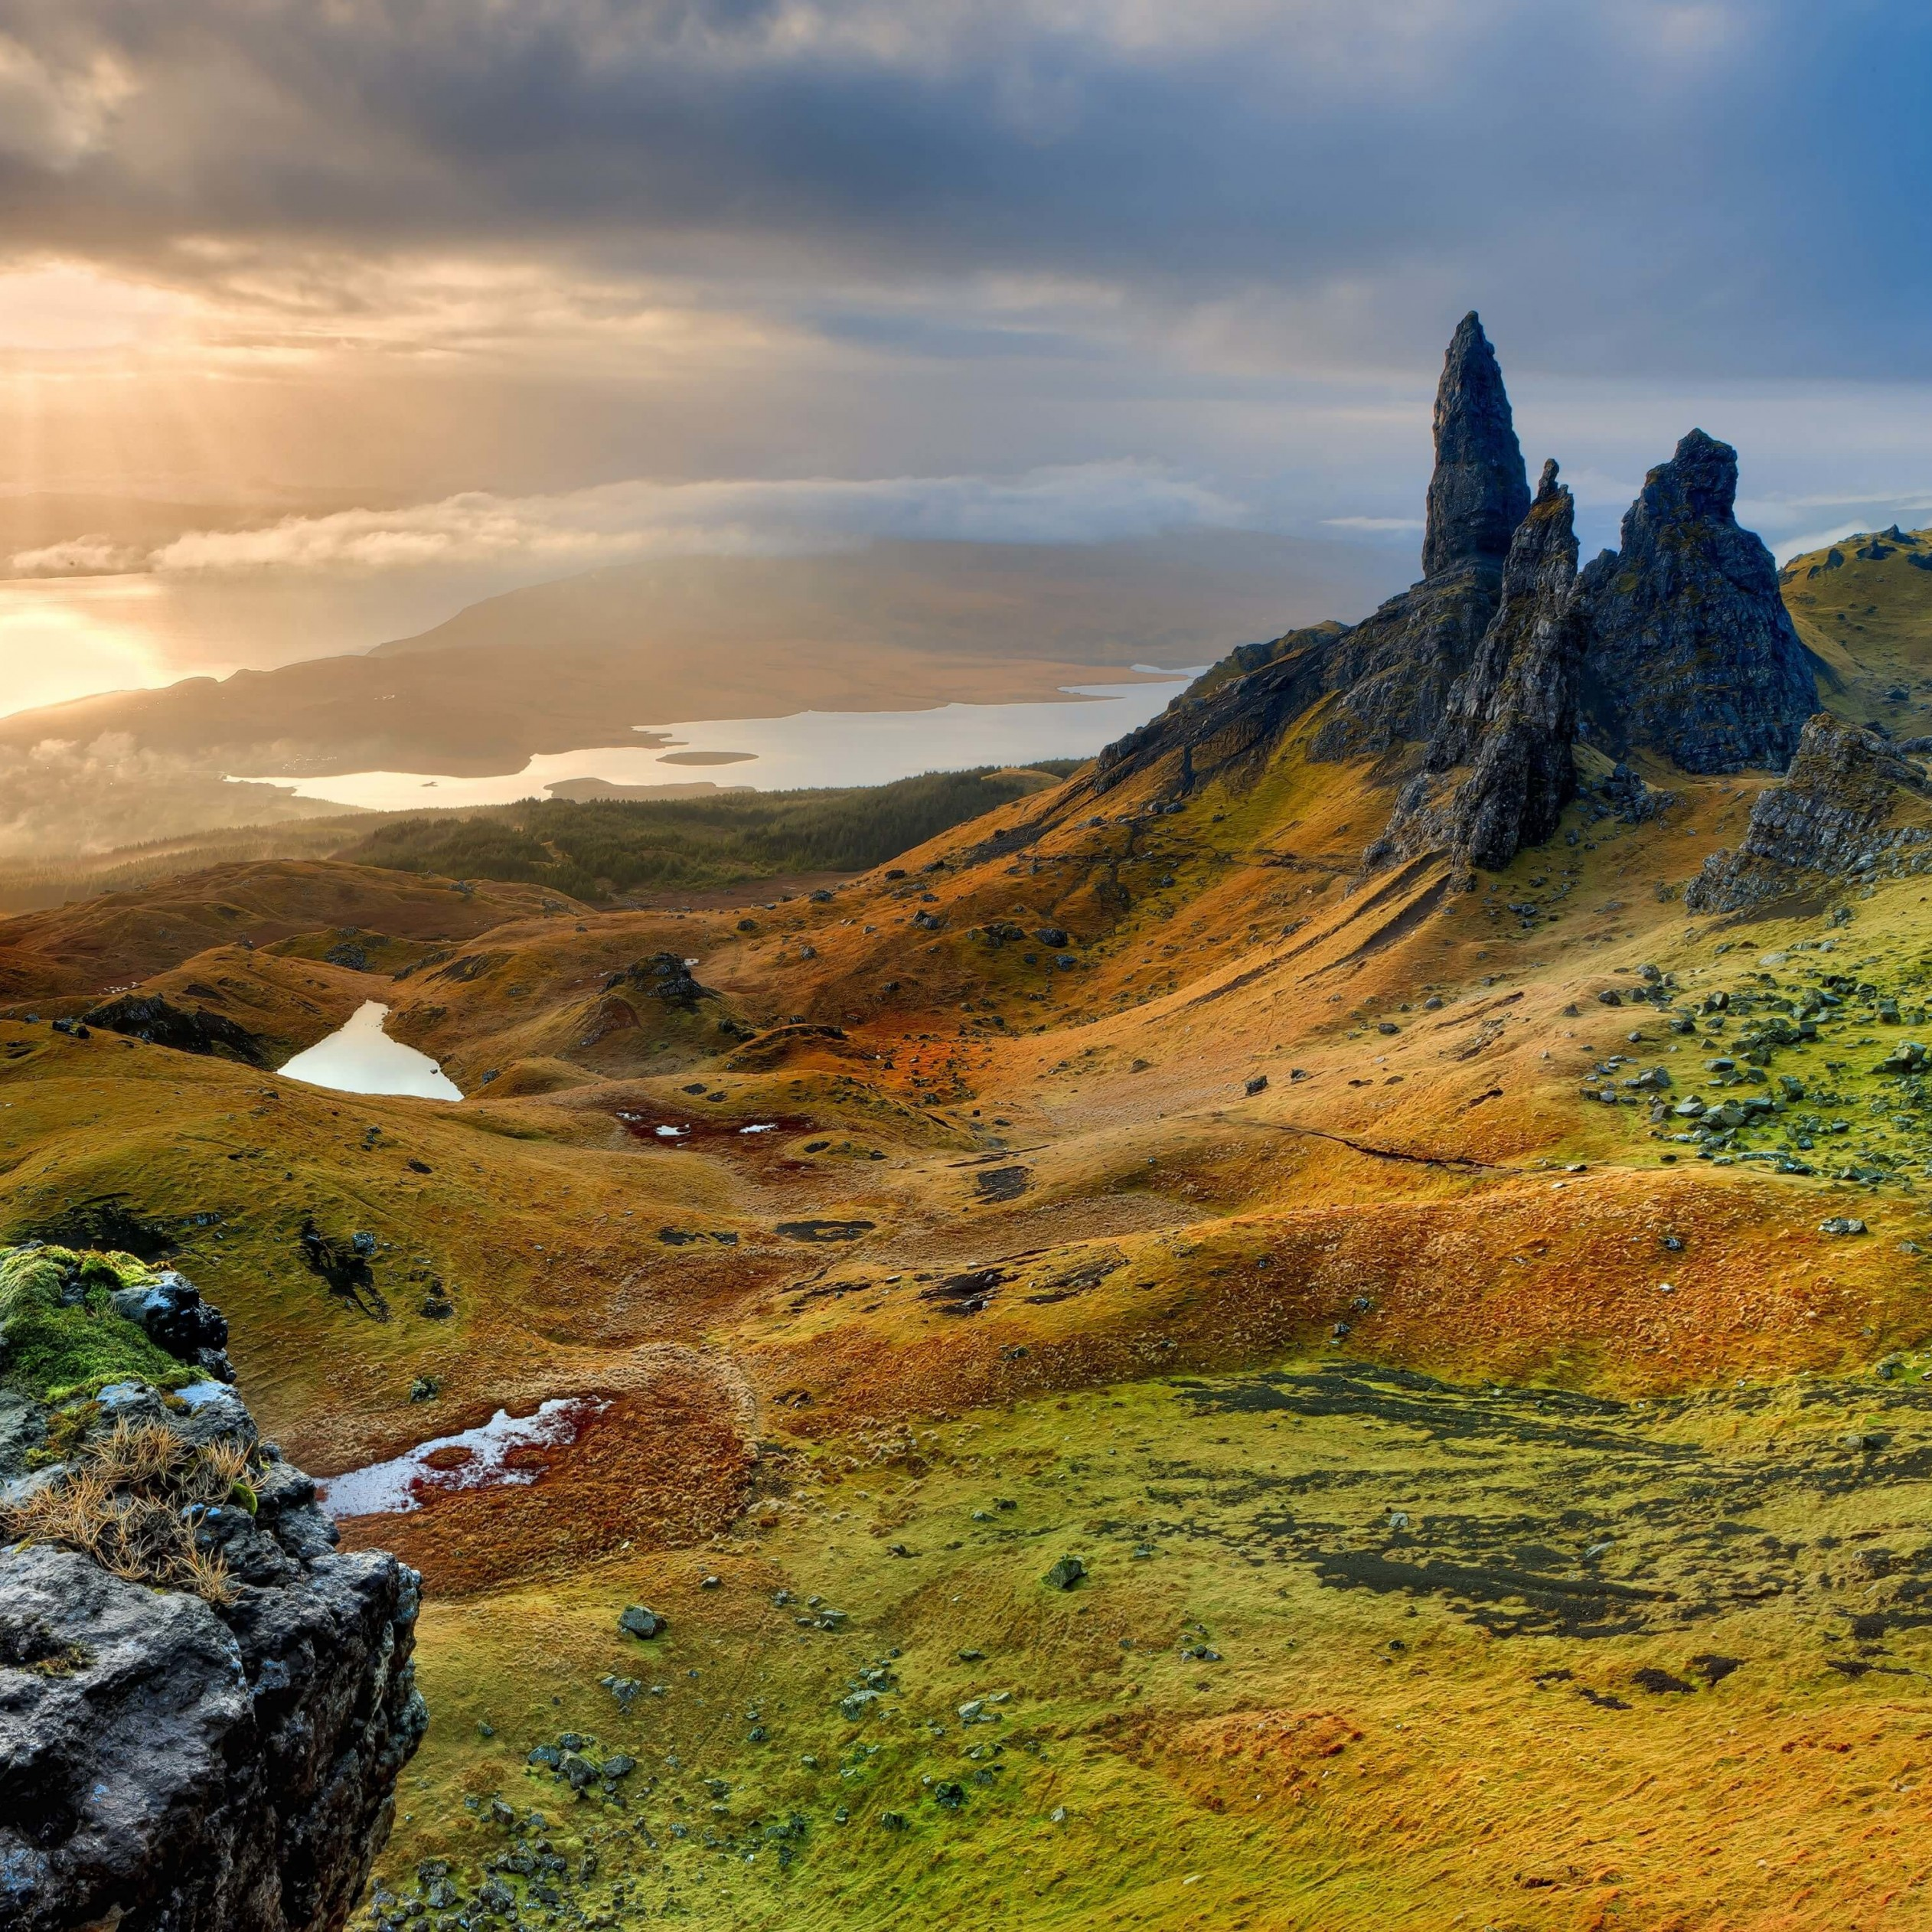 The Old Man of Storr, Isle of Skye, Scotland Wallpaper for Apple iPad 3